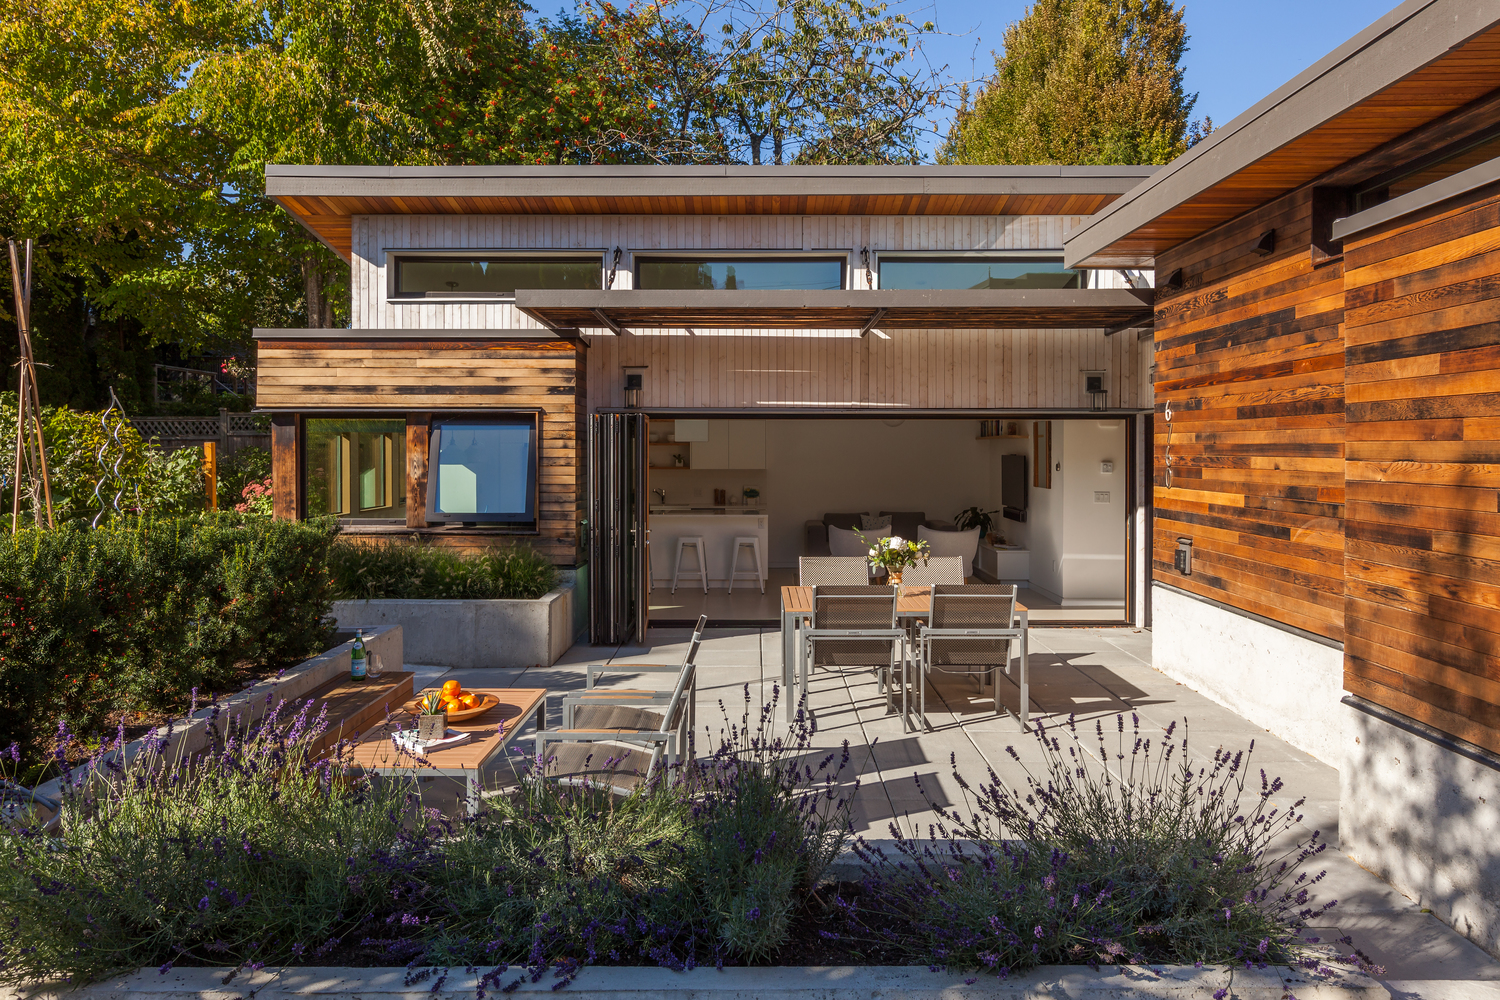 Will California's new ADU laws create a backyard building boom?